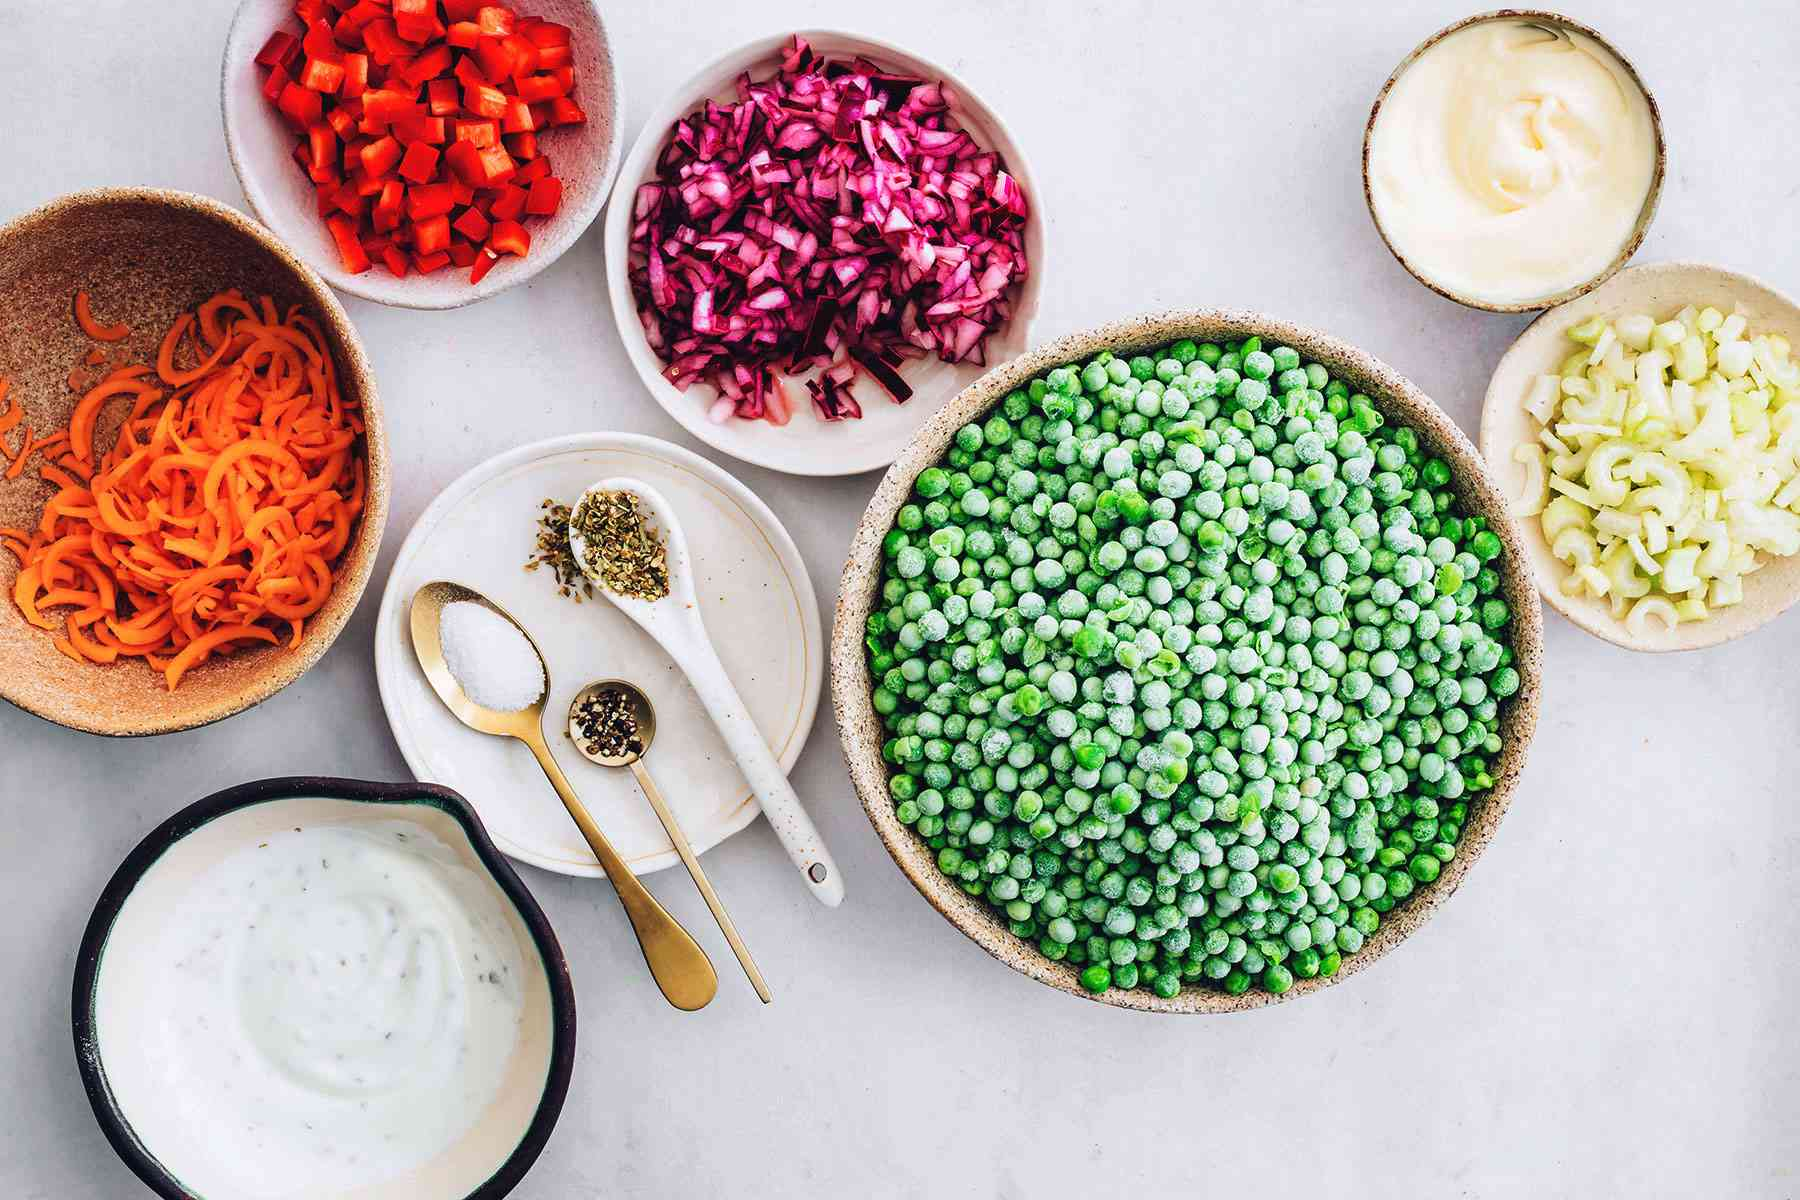 Green Pea Salad With Easy Creamy Dressing ingredients